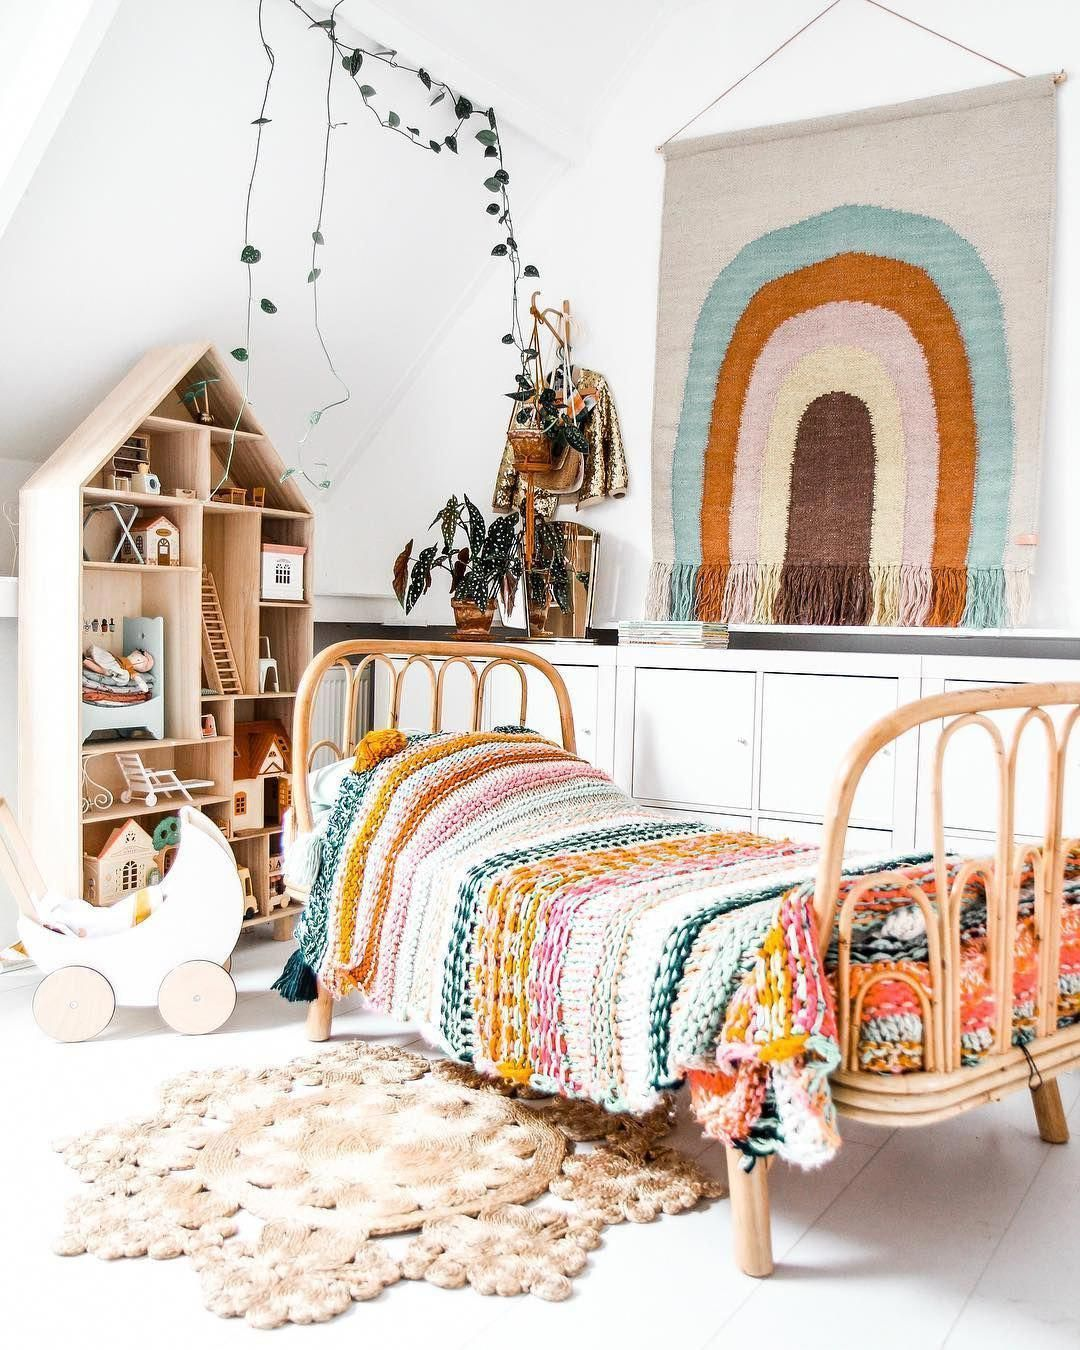 Fantastic Bedroom Decor Are Readily Available On Our Website Have A Look And You Will Not Be Sorry You Did Be Girl Room Kid Room Decor Kids Room Inspiration